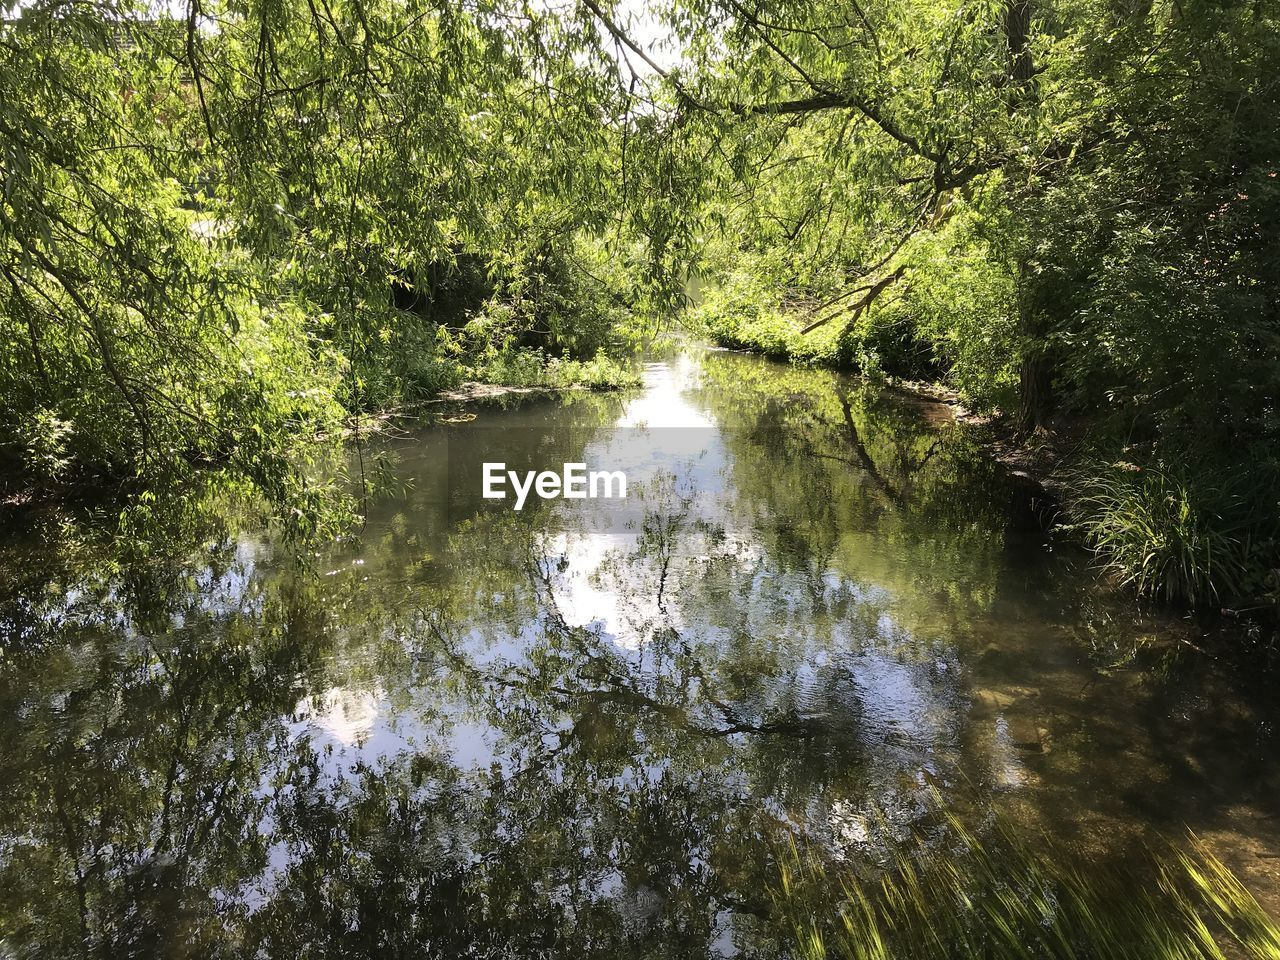 tree, water, forest, plant, nature, reflection, tranquility, growth, beauty in nature, land, no people, environment, scenics - nature, day, outdoors, waterfront, river, green color, tranquil scene, woodland, flowing water, flowing